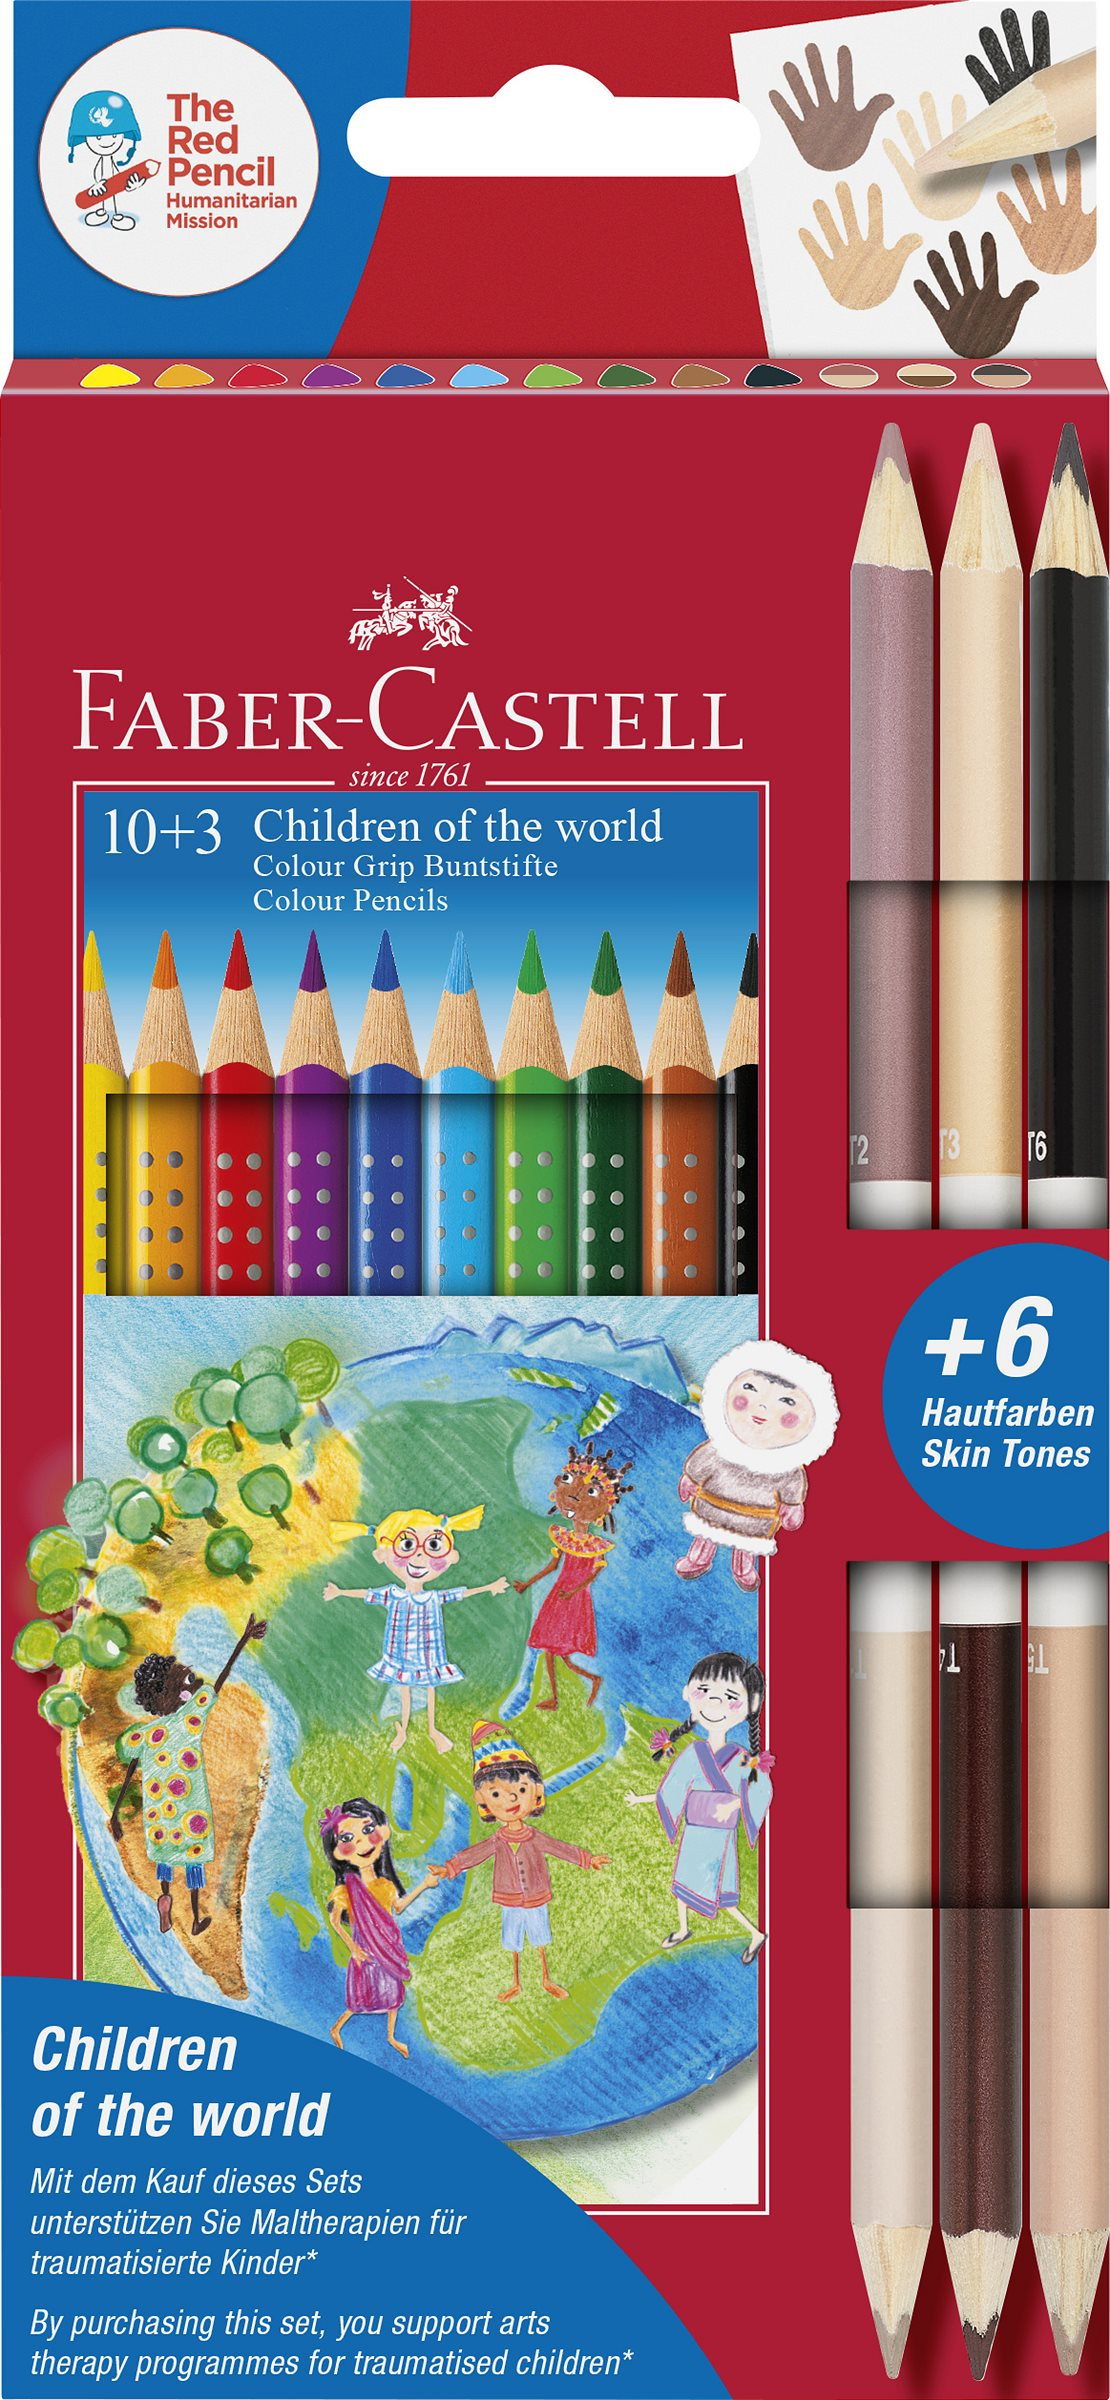 Faber-Castell_Children of the world Buntstiftset 10+3_10 EUR